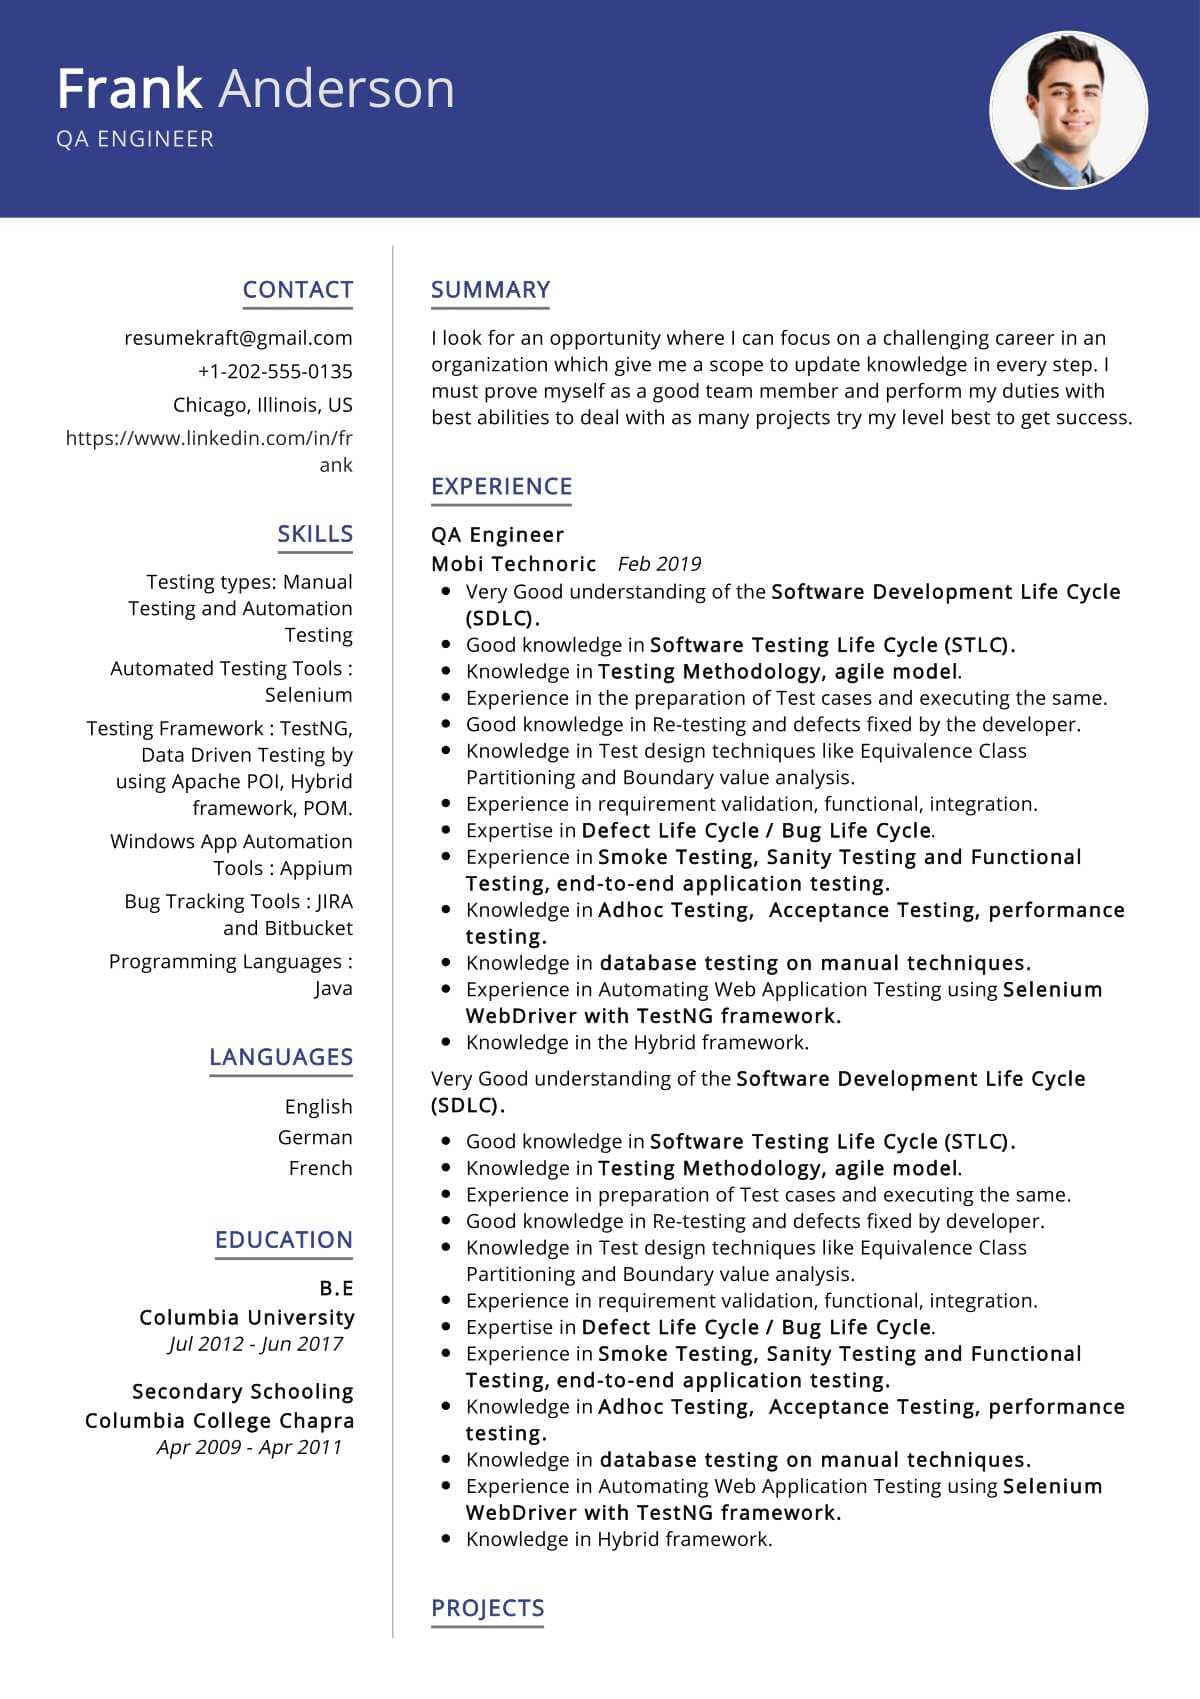 QA Engineer Resume